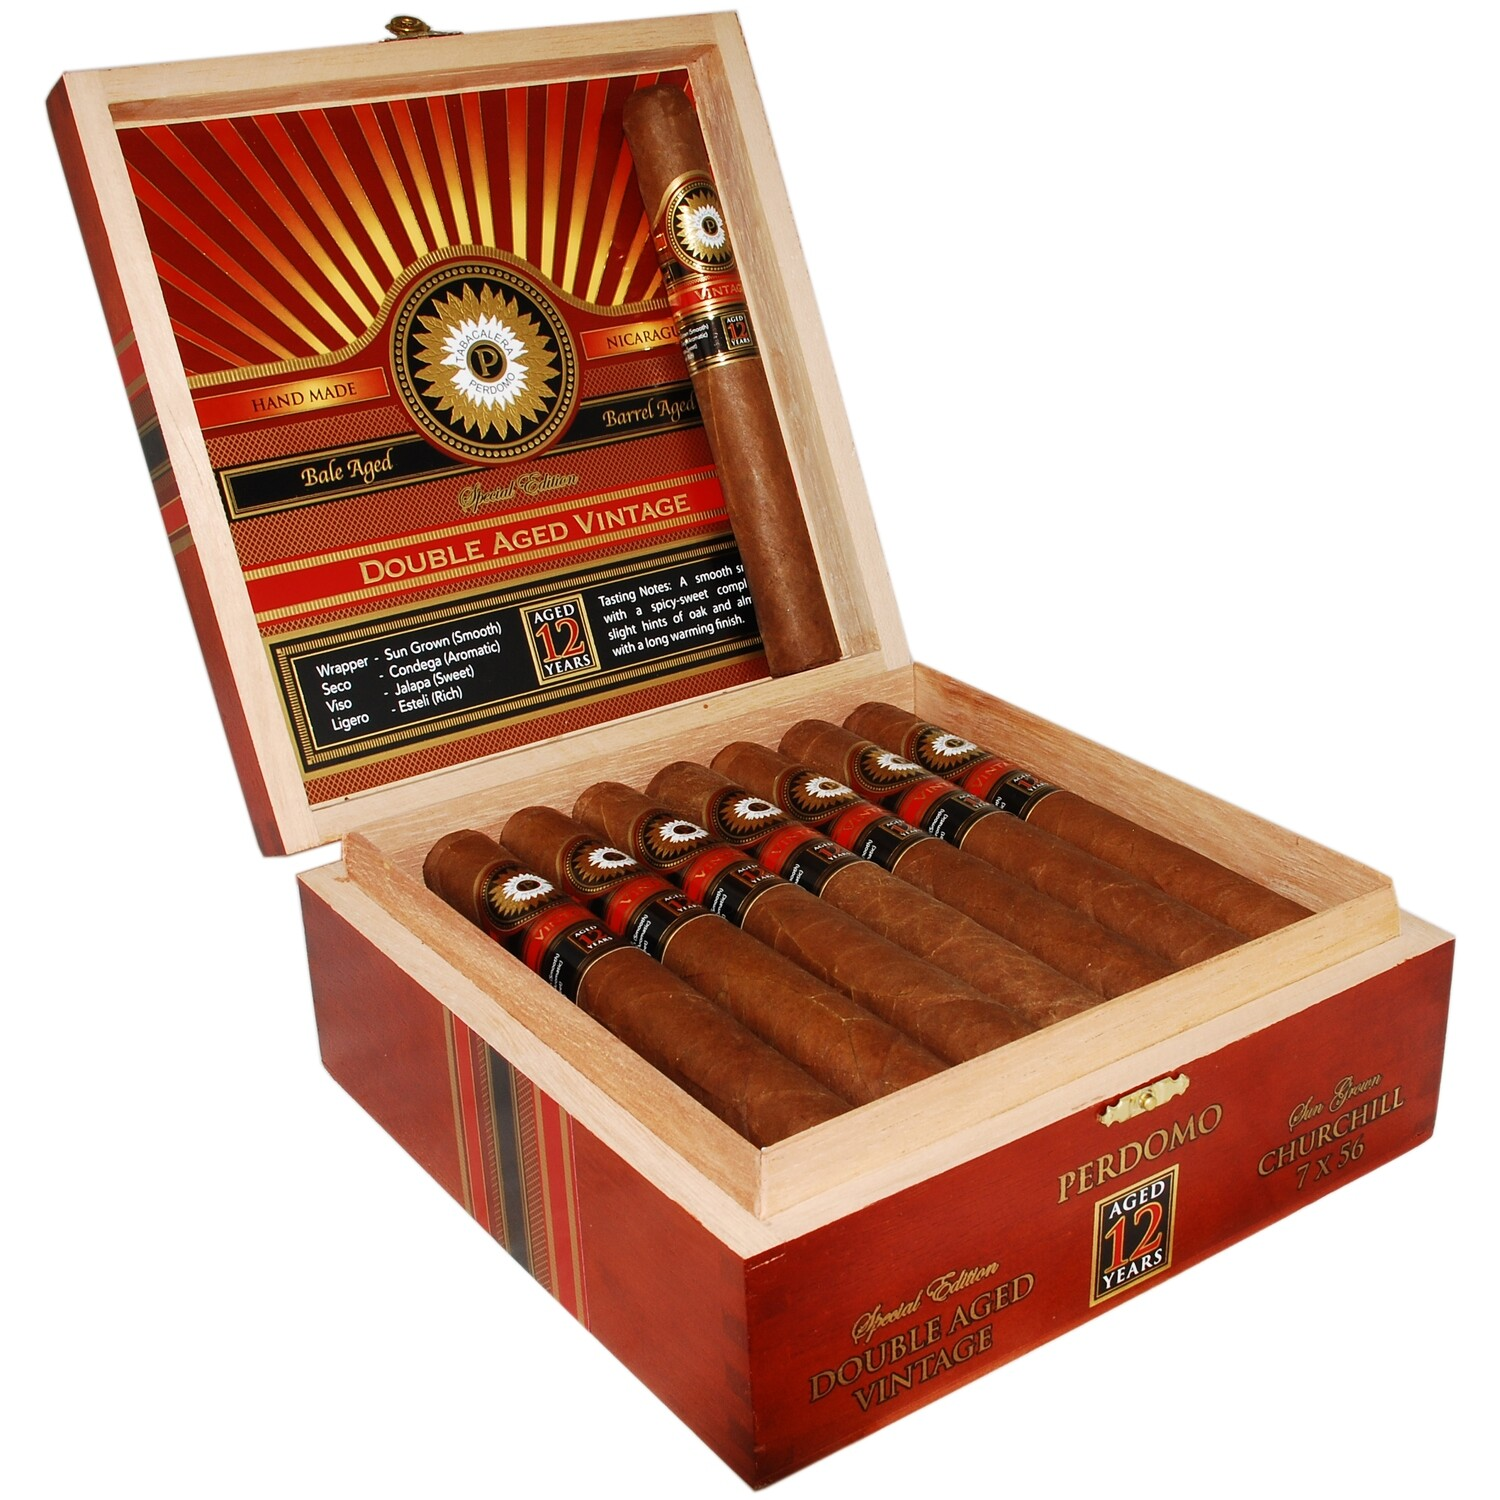 Perdomo Double Aged 12 Year Vintage Churchill Sun Grown